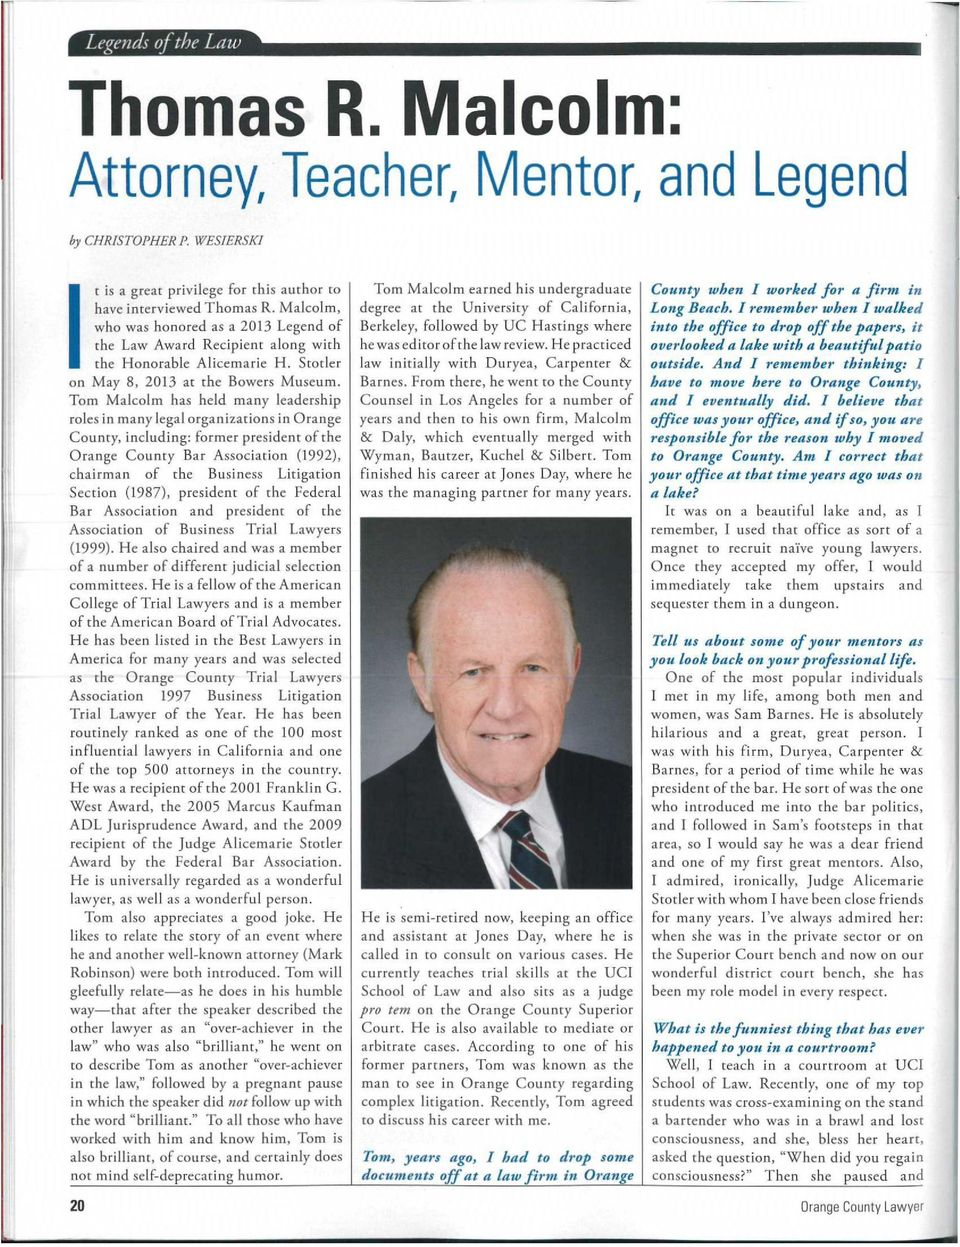 Tom Malcolm has held many leadership roles in many legal organizations in Orange County, including: former president of the Orange County Bar Association (1992), chairman of the Business Litigation